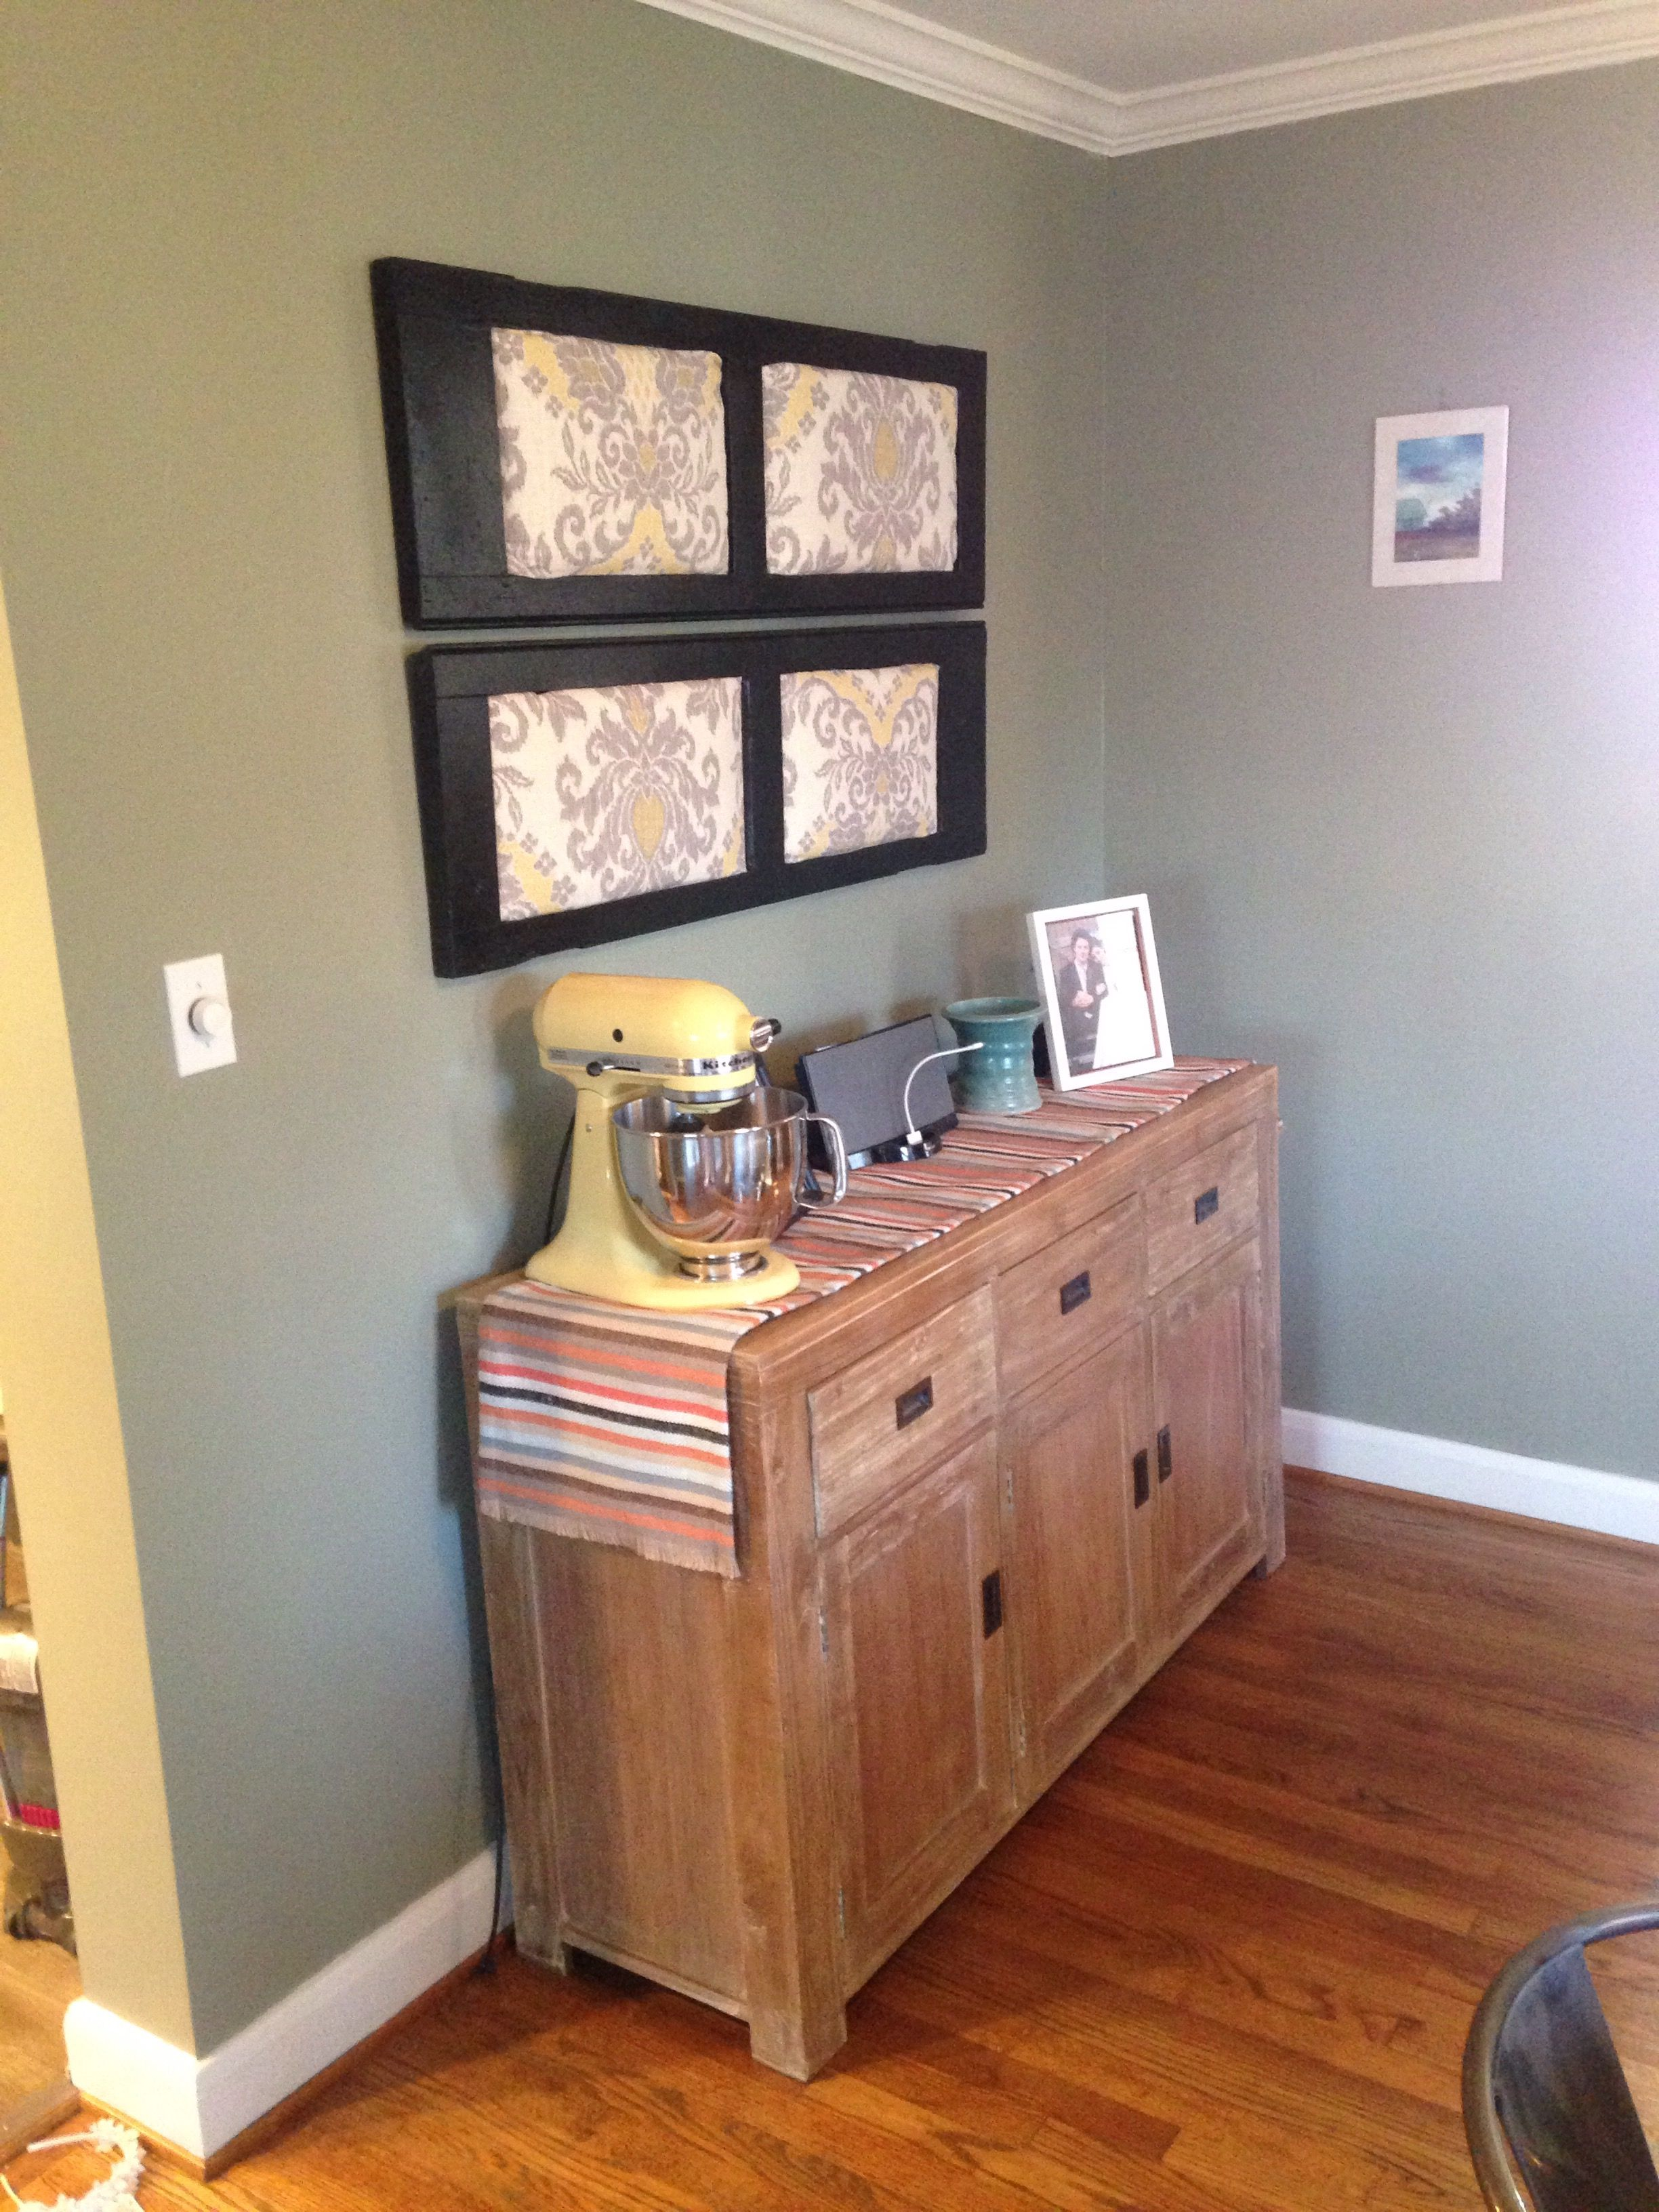 The Dining Room Painted  Rentals And Beans Benjamin Moore Extraordinary The Dining Room Painting Review